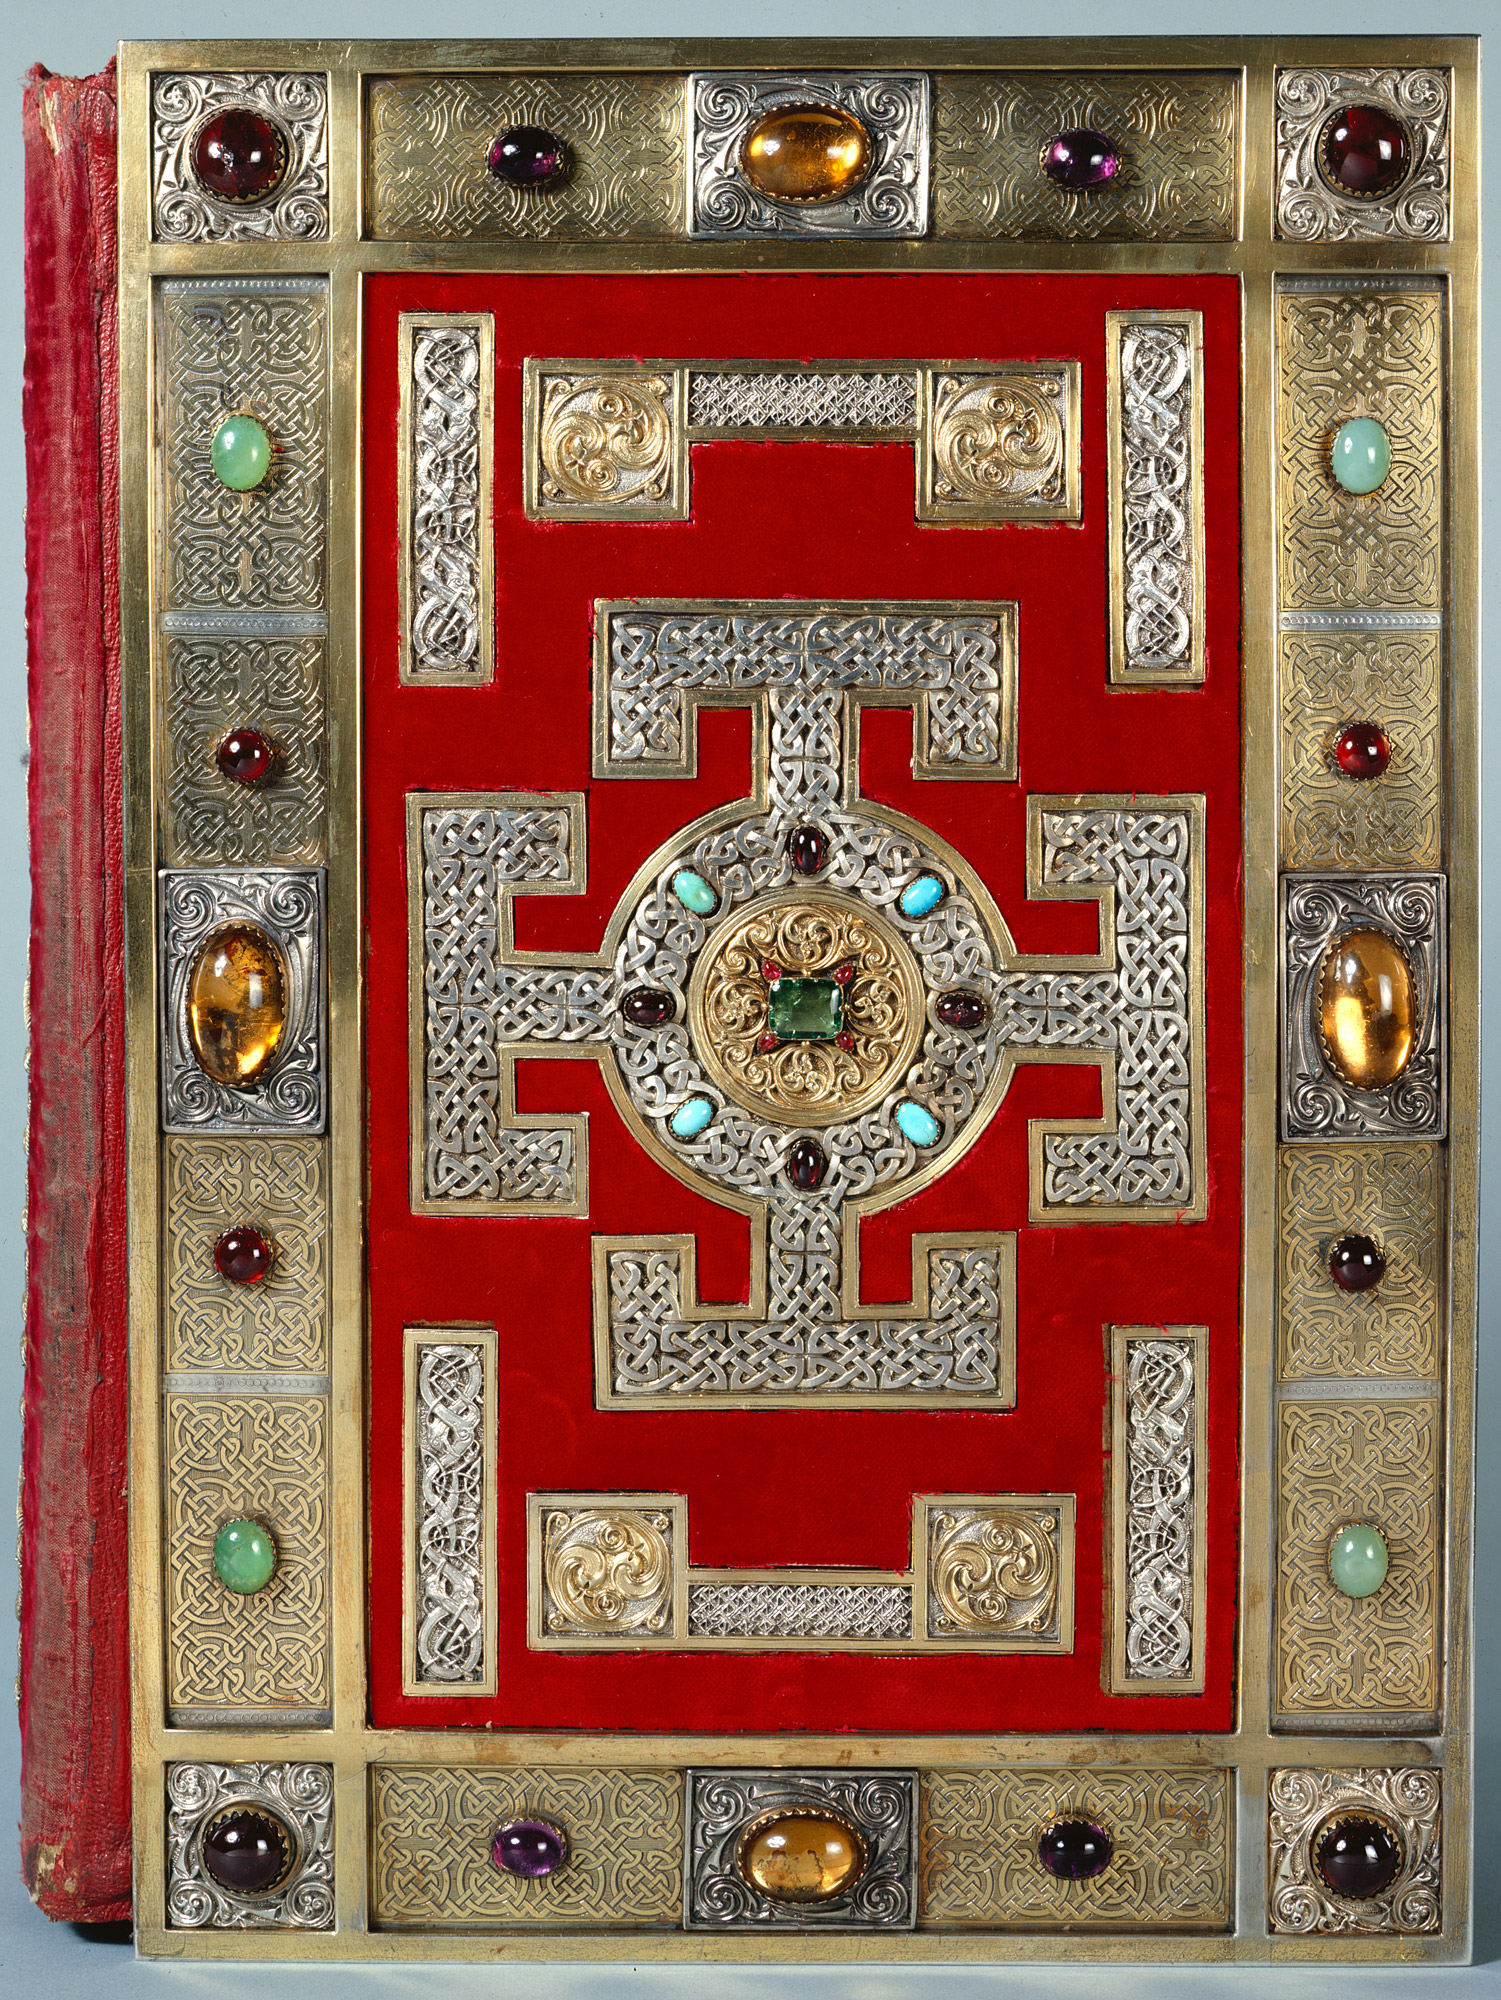 Lindisfarne Gospels - The British Library